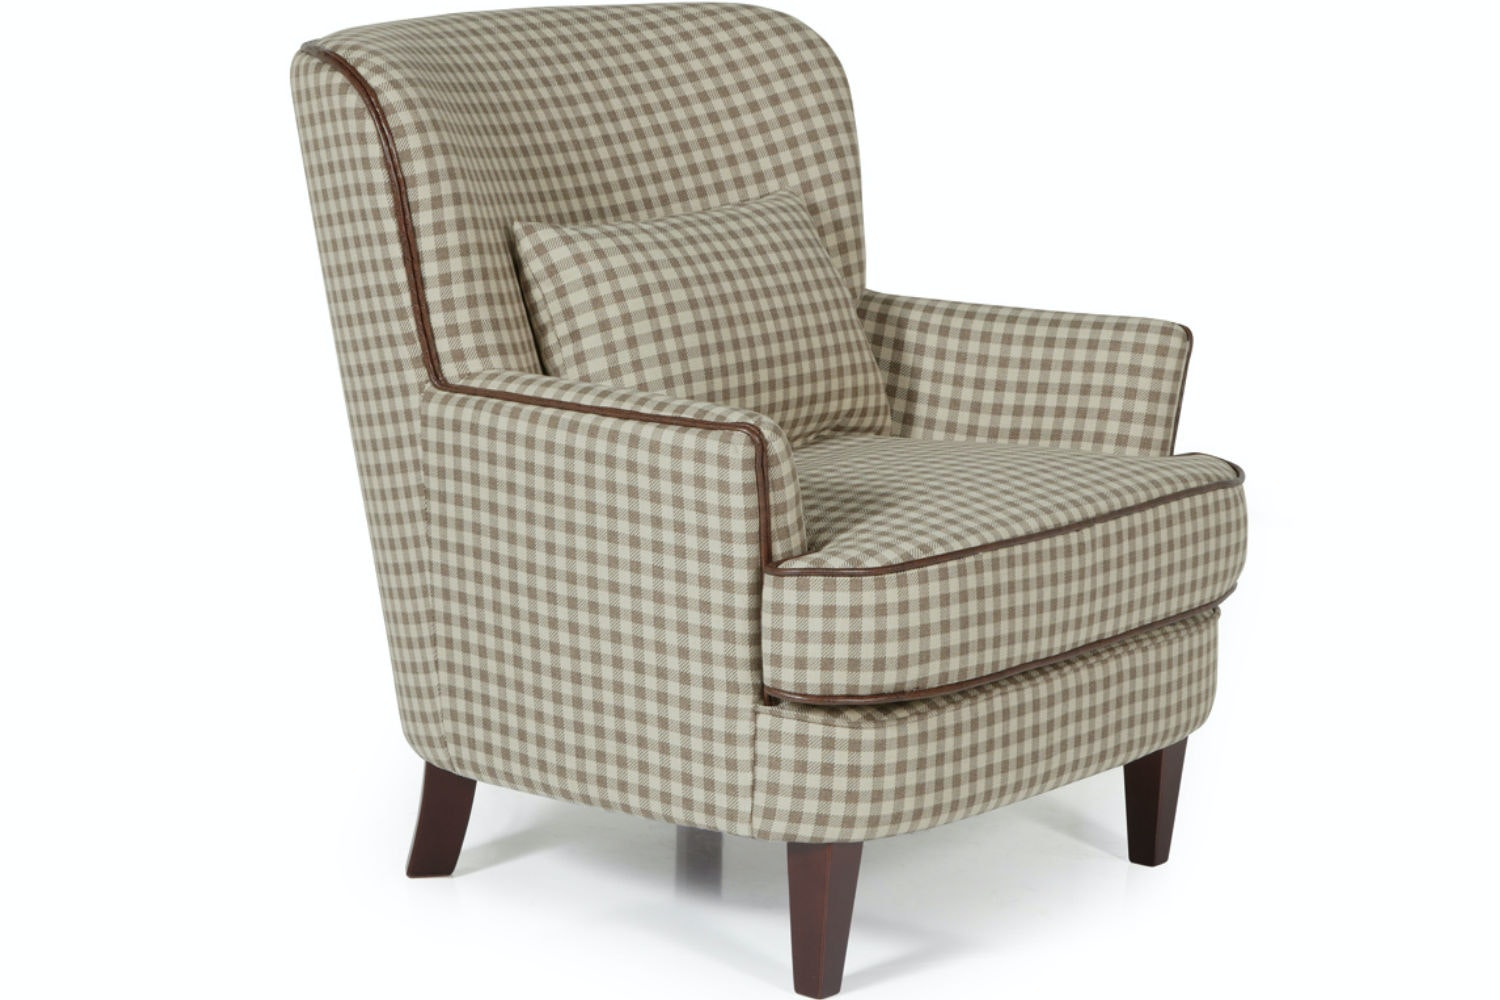 Trafalgar Bedroom Chair Cream